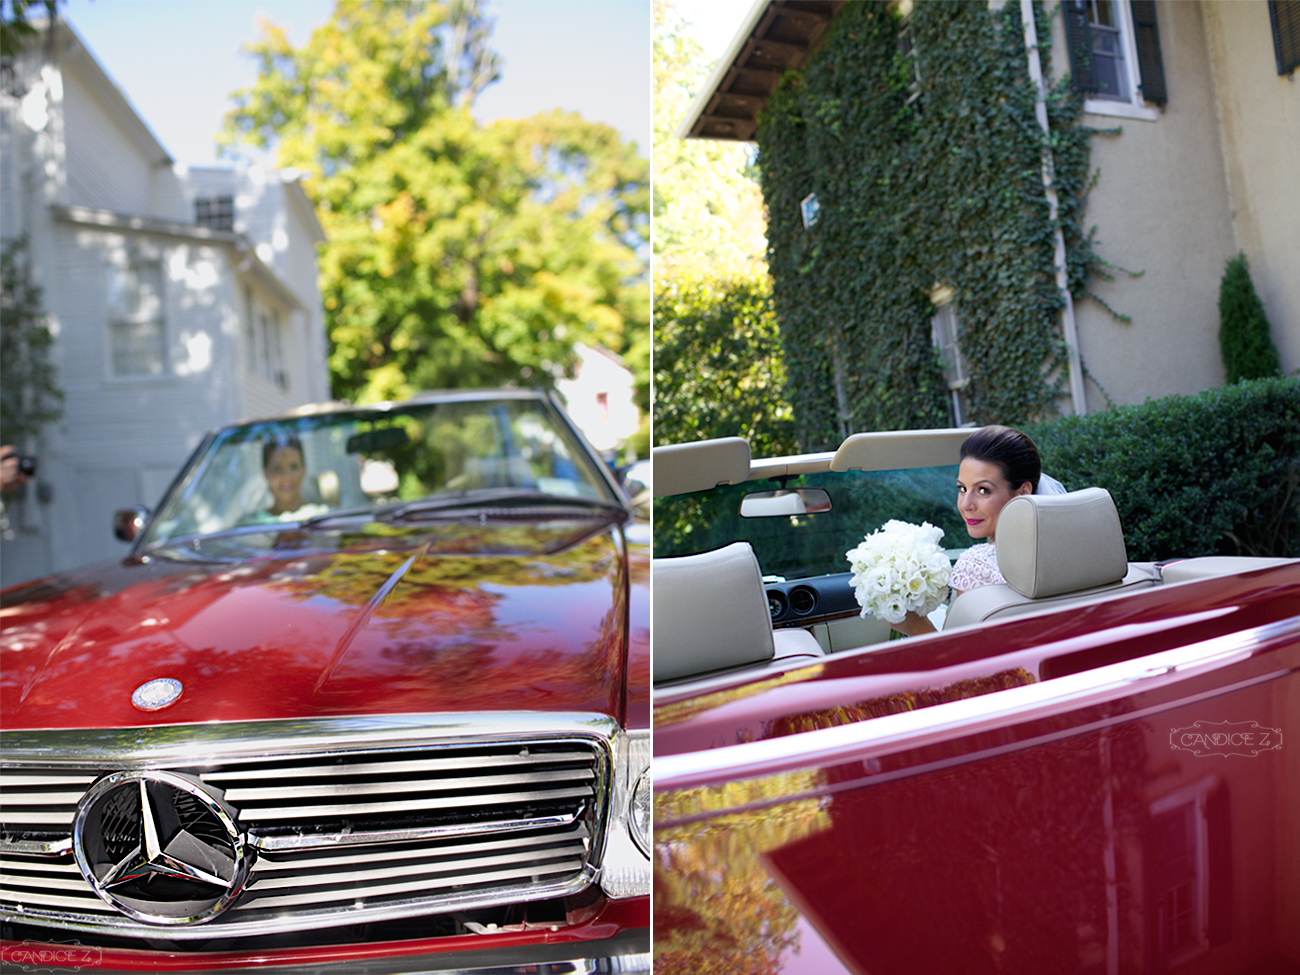 Lord_Thompson_Manor_Car_Red_Mercedes.png